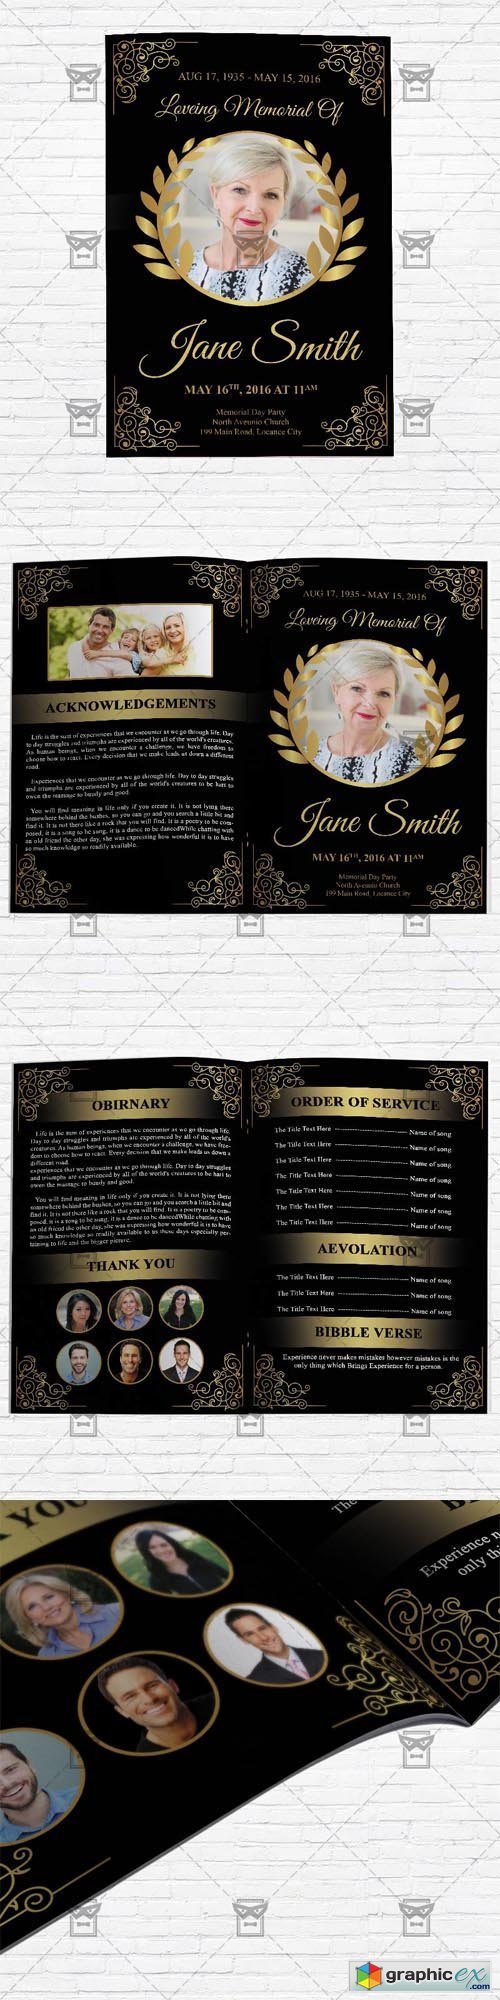 Funeral Program Vol 3 - Bifold Brochure Template